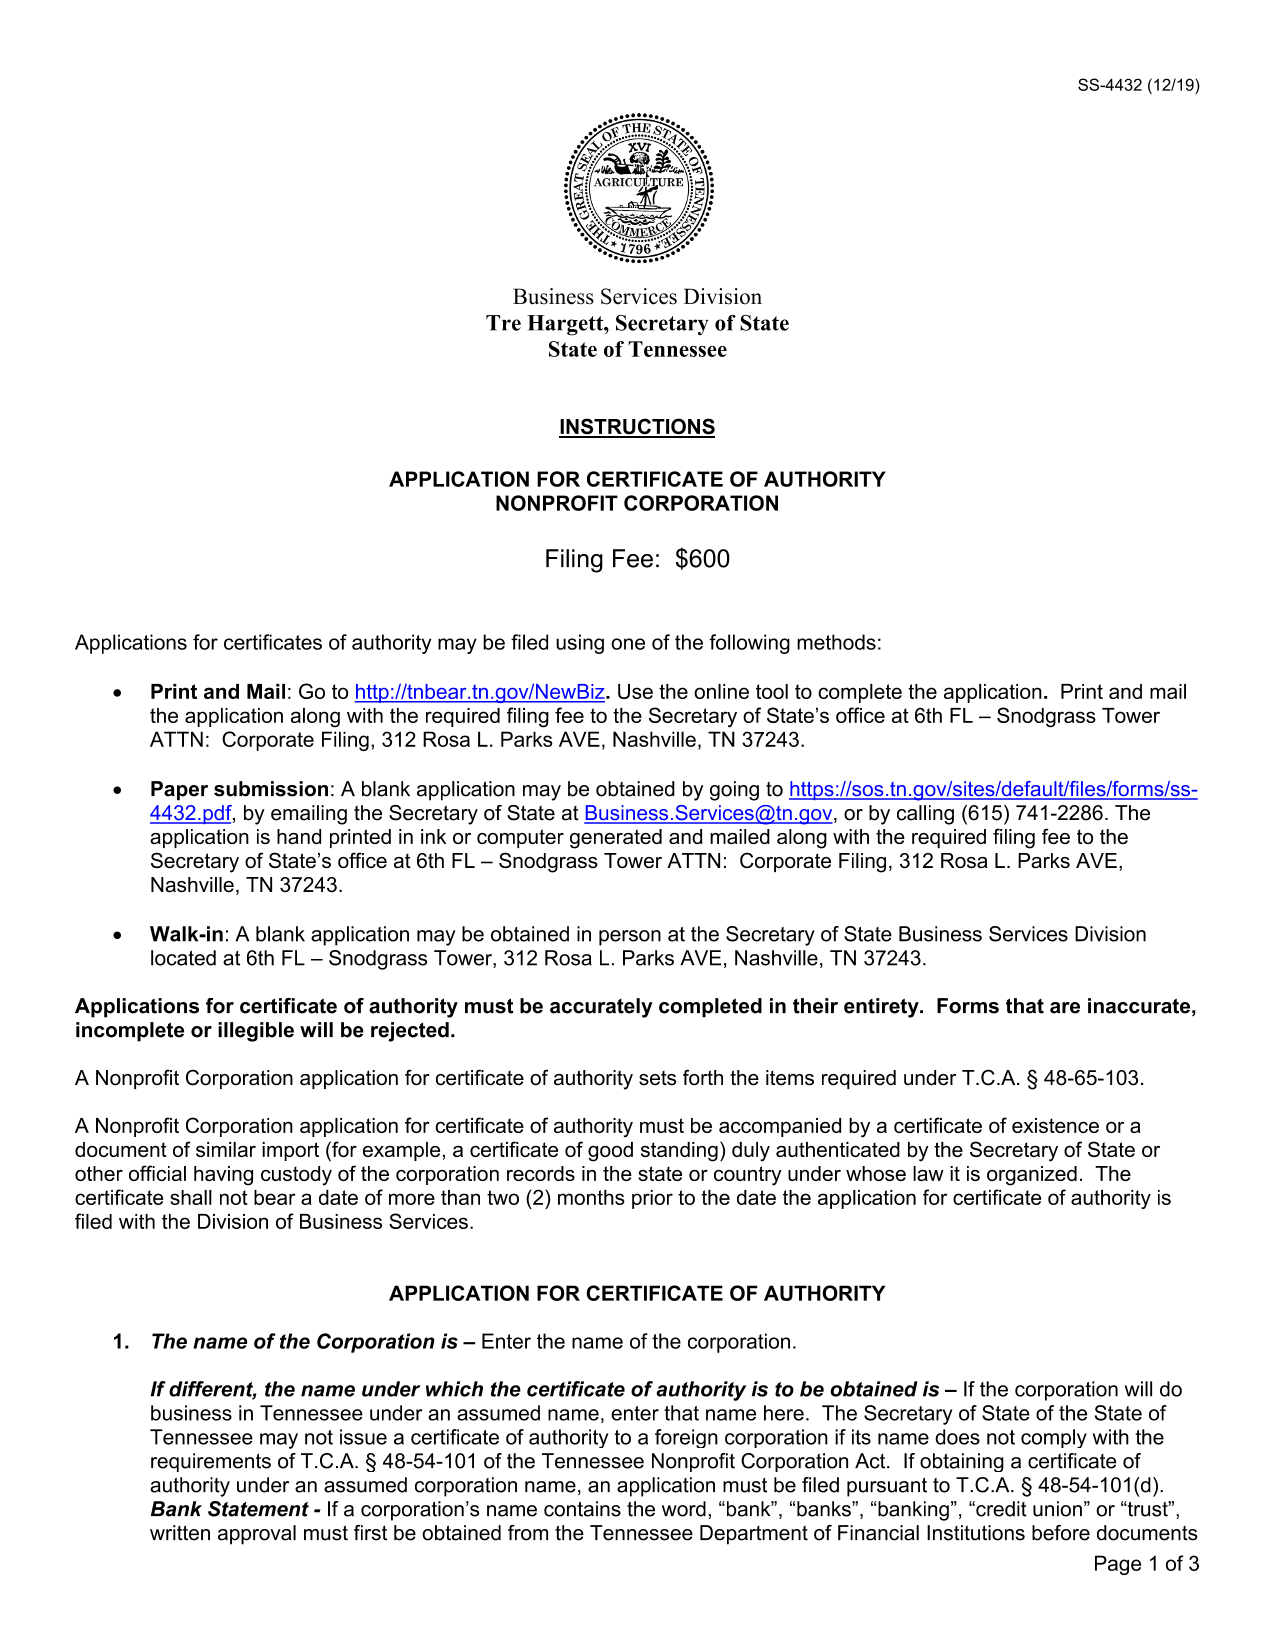 tennessee-application-for-certificate-of-authority-for-a-nonprofit-organization